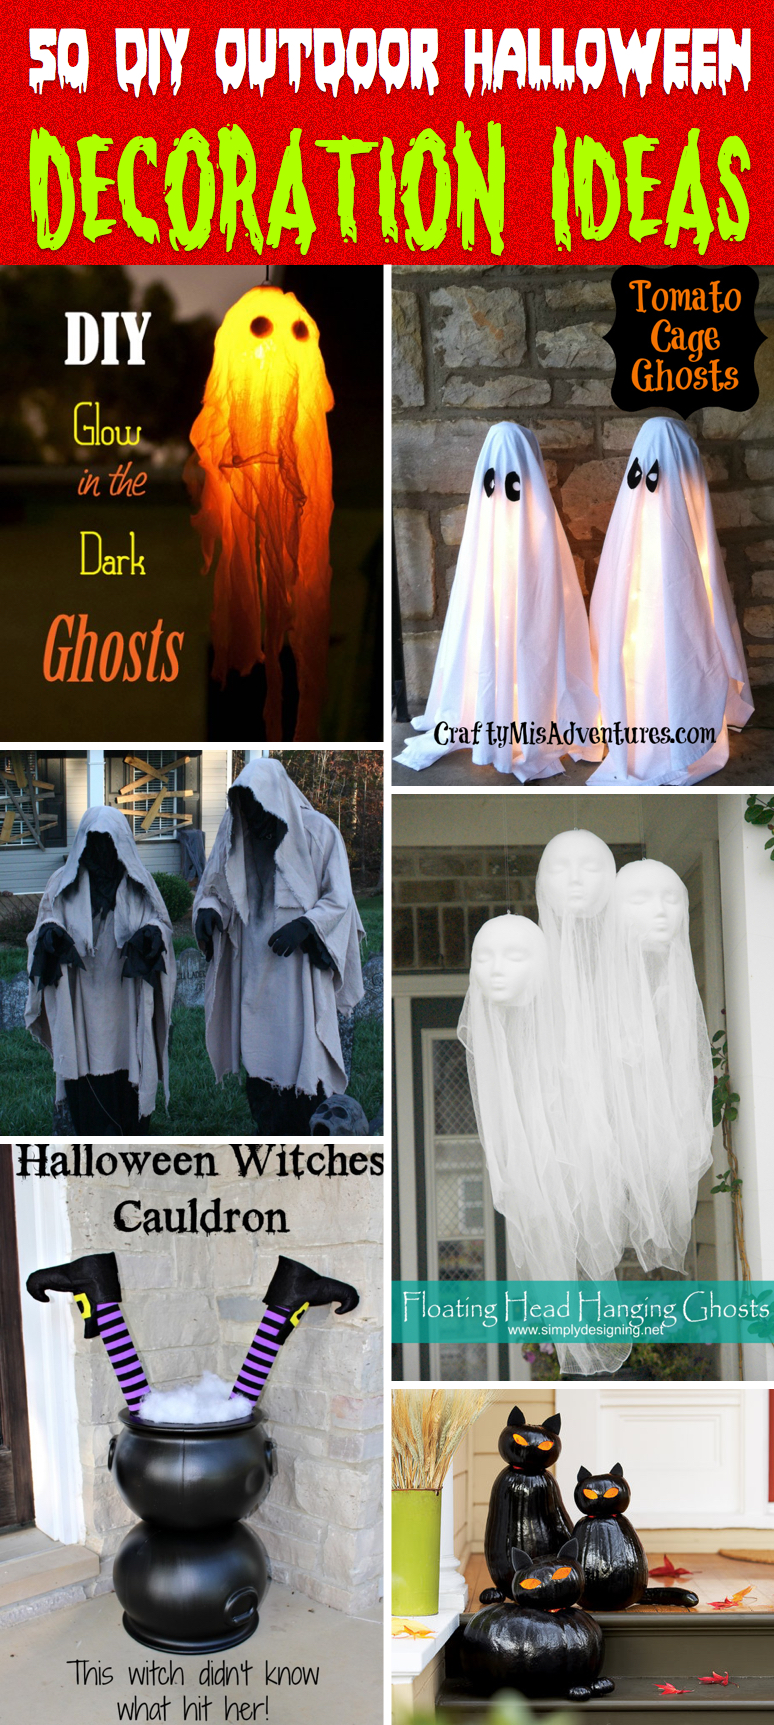 50 Easy DIY Outdoor Halloween Decoration Ideas for 2017 ~ 080131_Halloween Decoration Ideas Easy